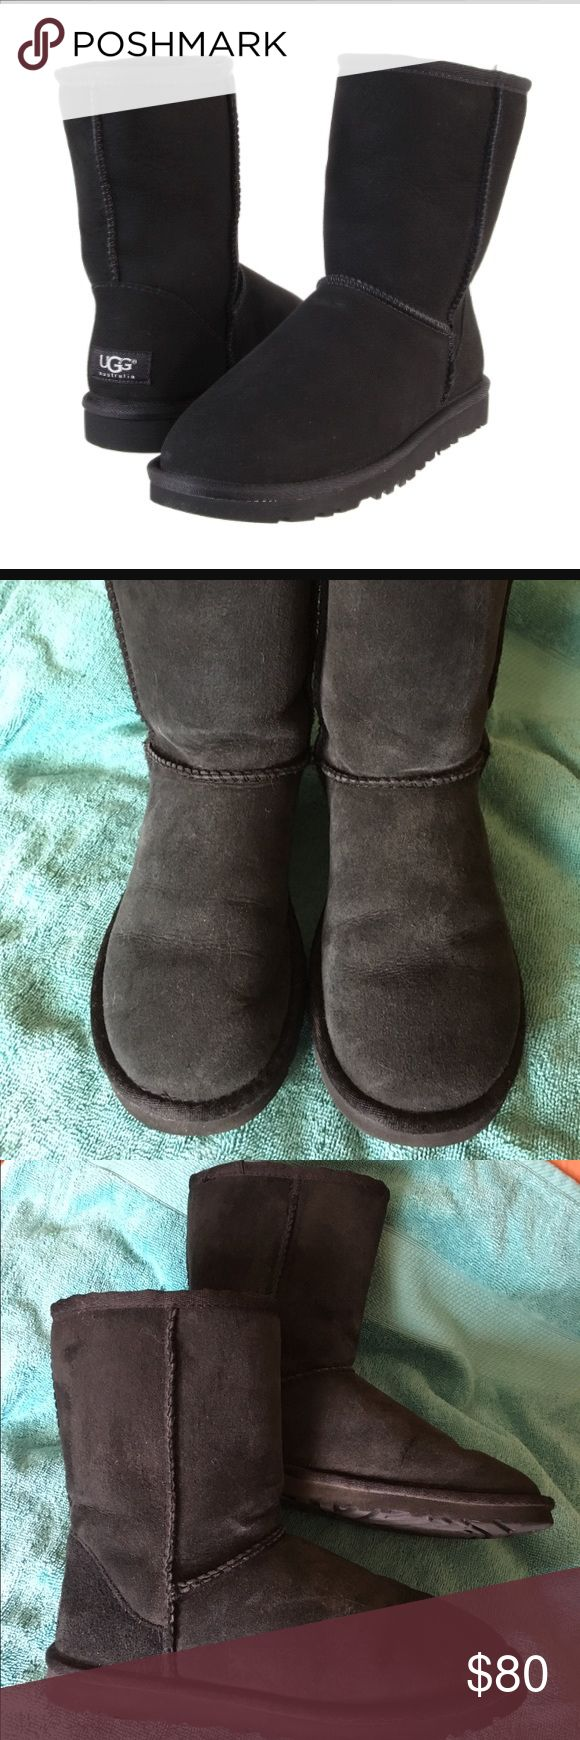 Short black UGG shearling boots Short black Uggs in size 6 (these run a little big, I normally wear a 6.5-7 with a slightly wider foot, and these fit well). These were purchased in fall and worn several times but are still in good condition. A little wear but no damage, rips, stains, etc. Soles are also in good condition as seen in the photos. UGG Shoes Winter & Rain Boots